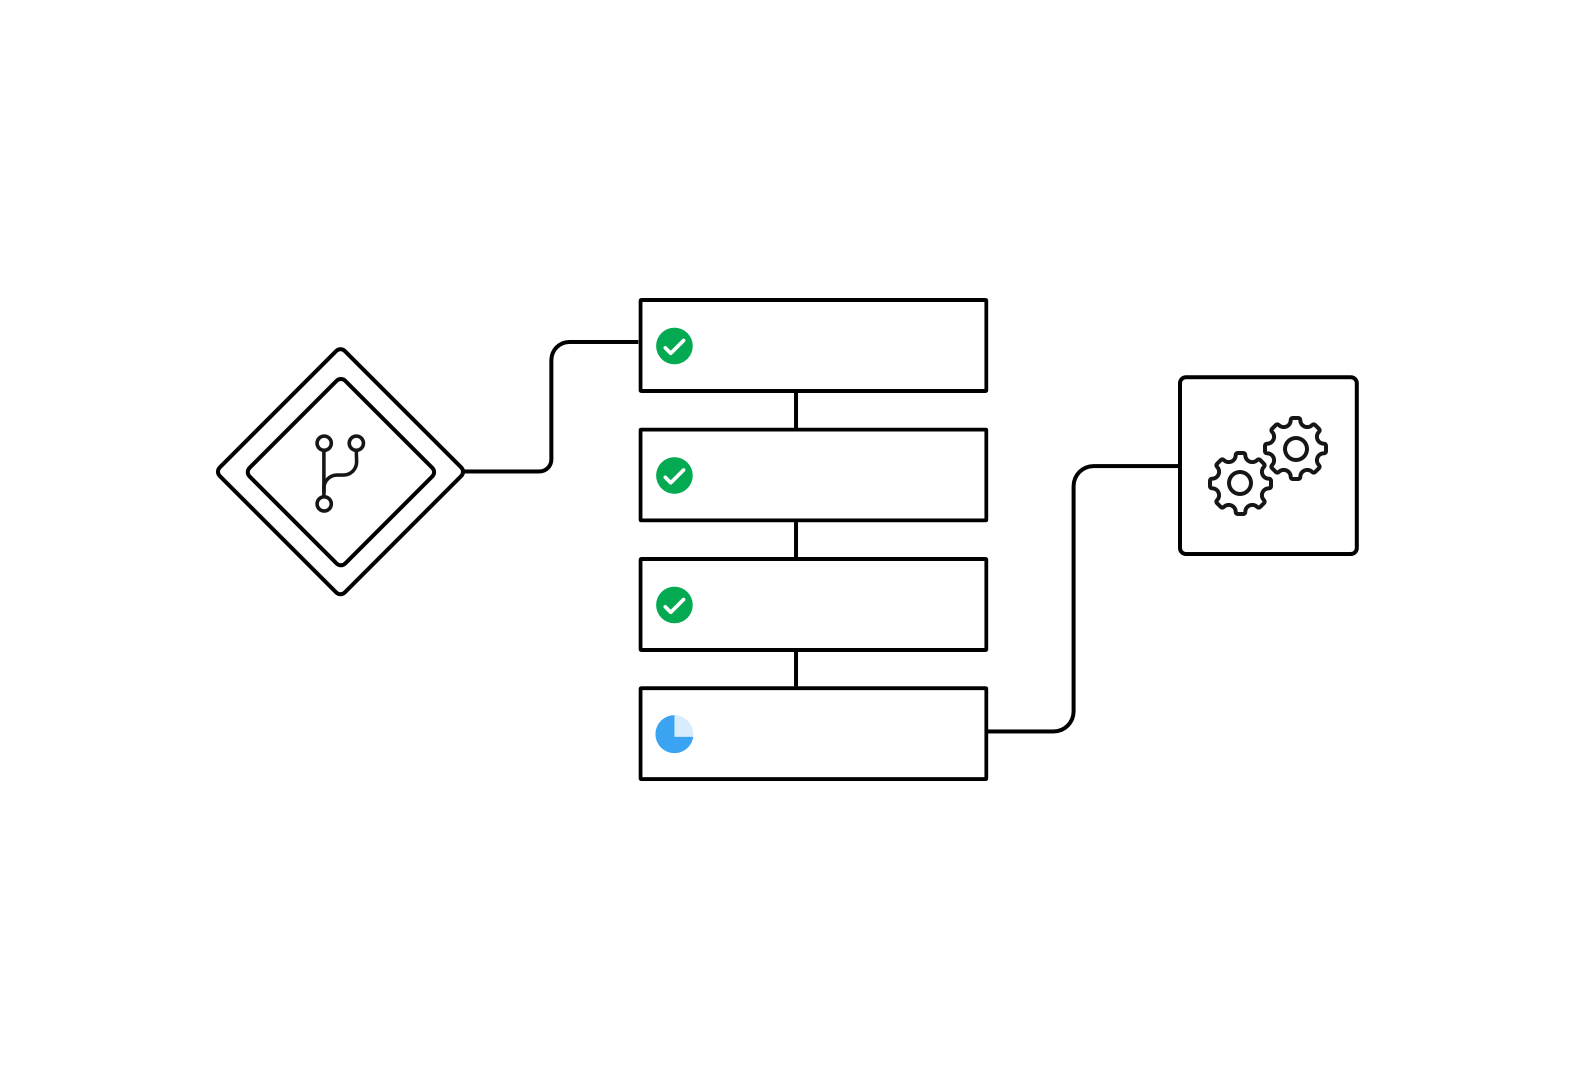 Sequential Job Execution Workflow